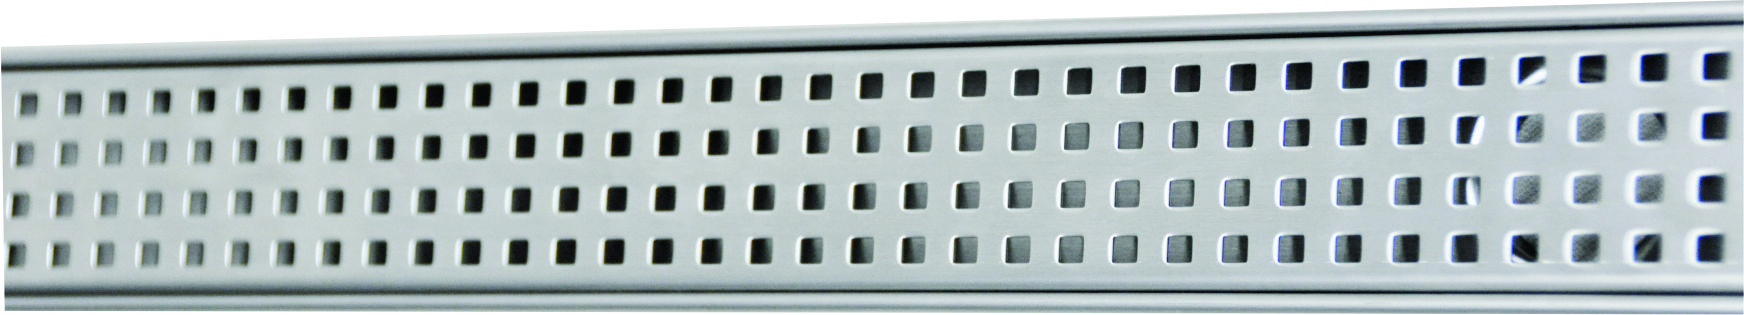 RDXD952 - RDXD955 Stainless steel Grates Image